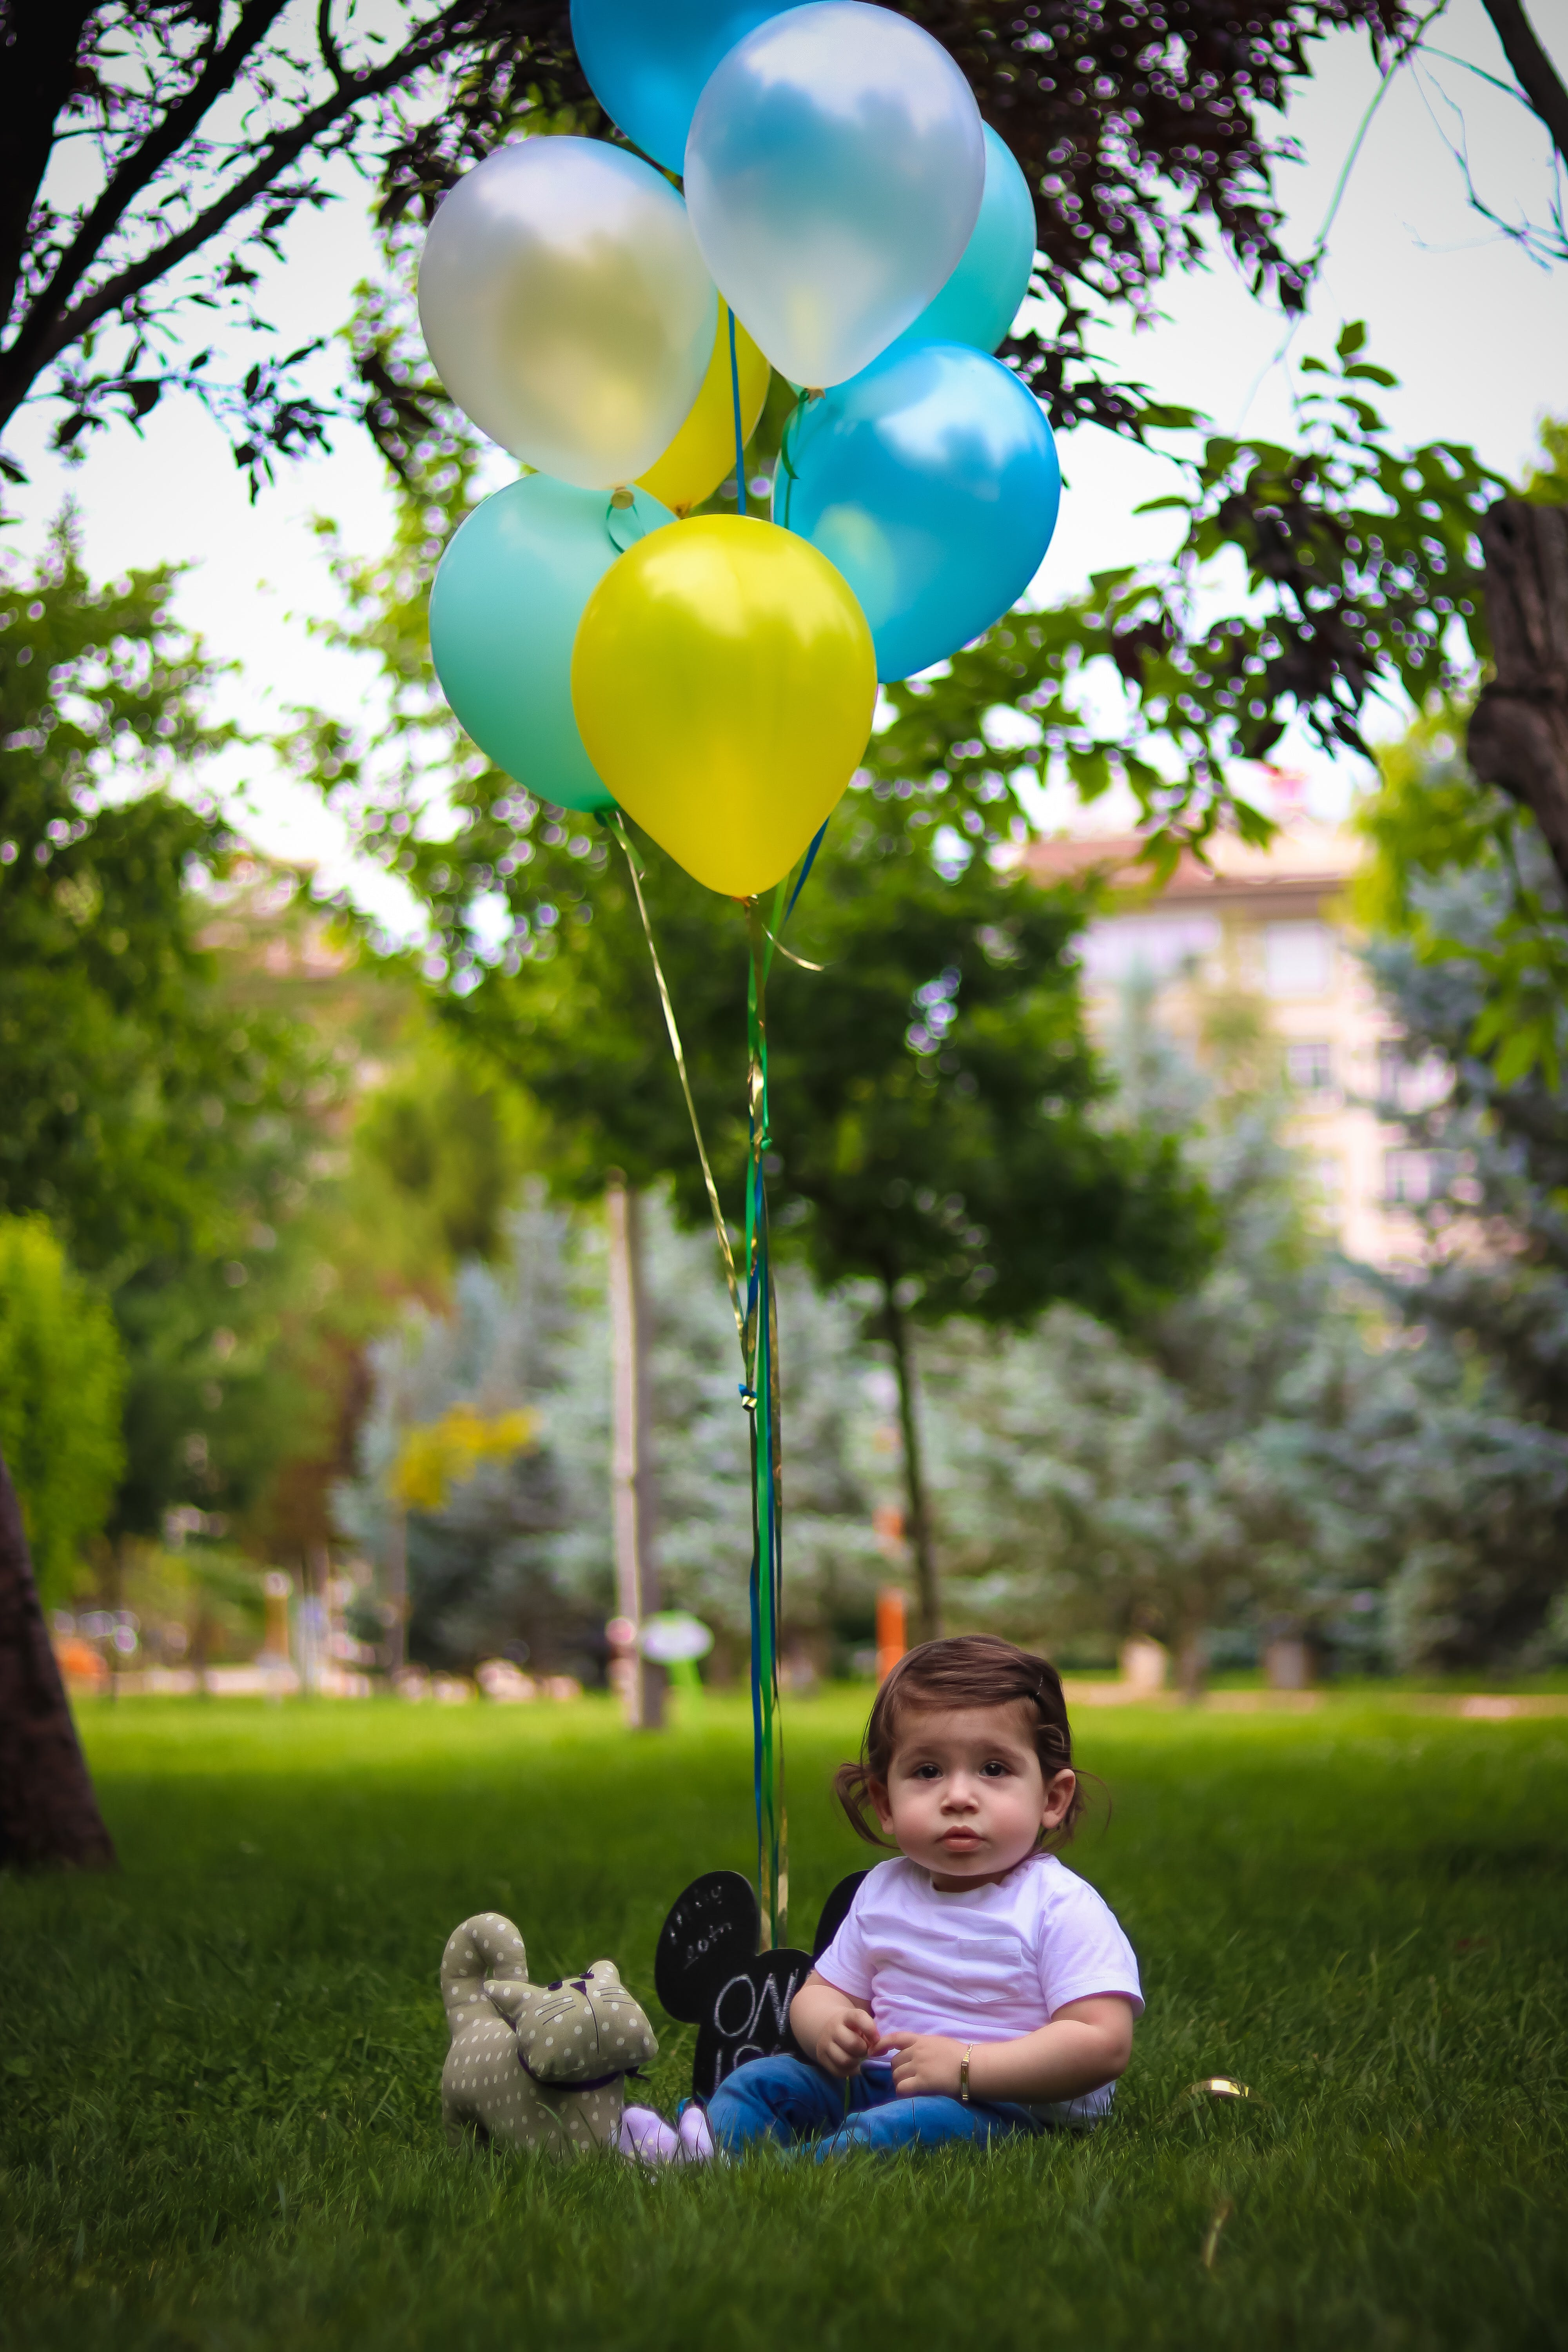 Baby' With Blue and Yellow Balloons